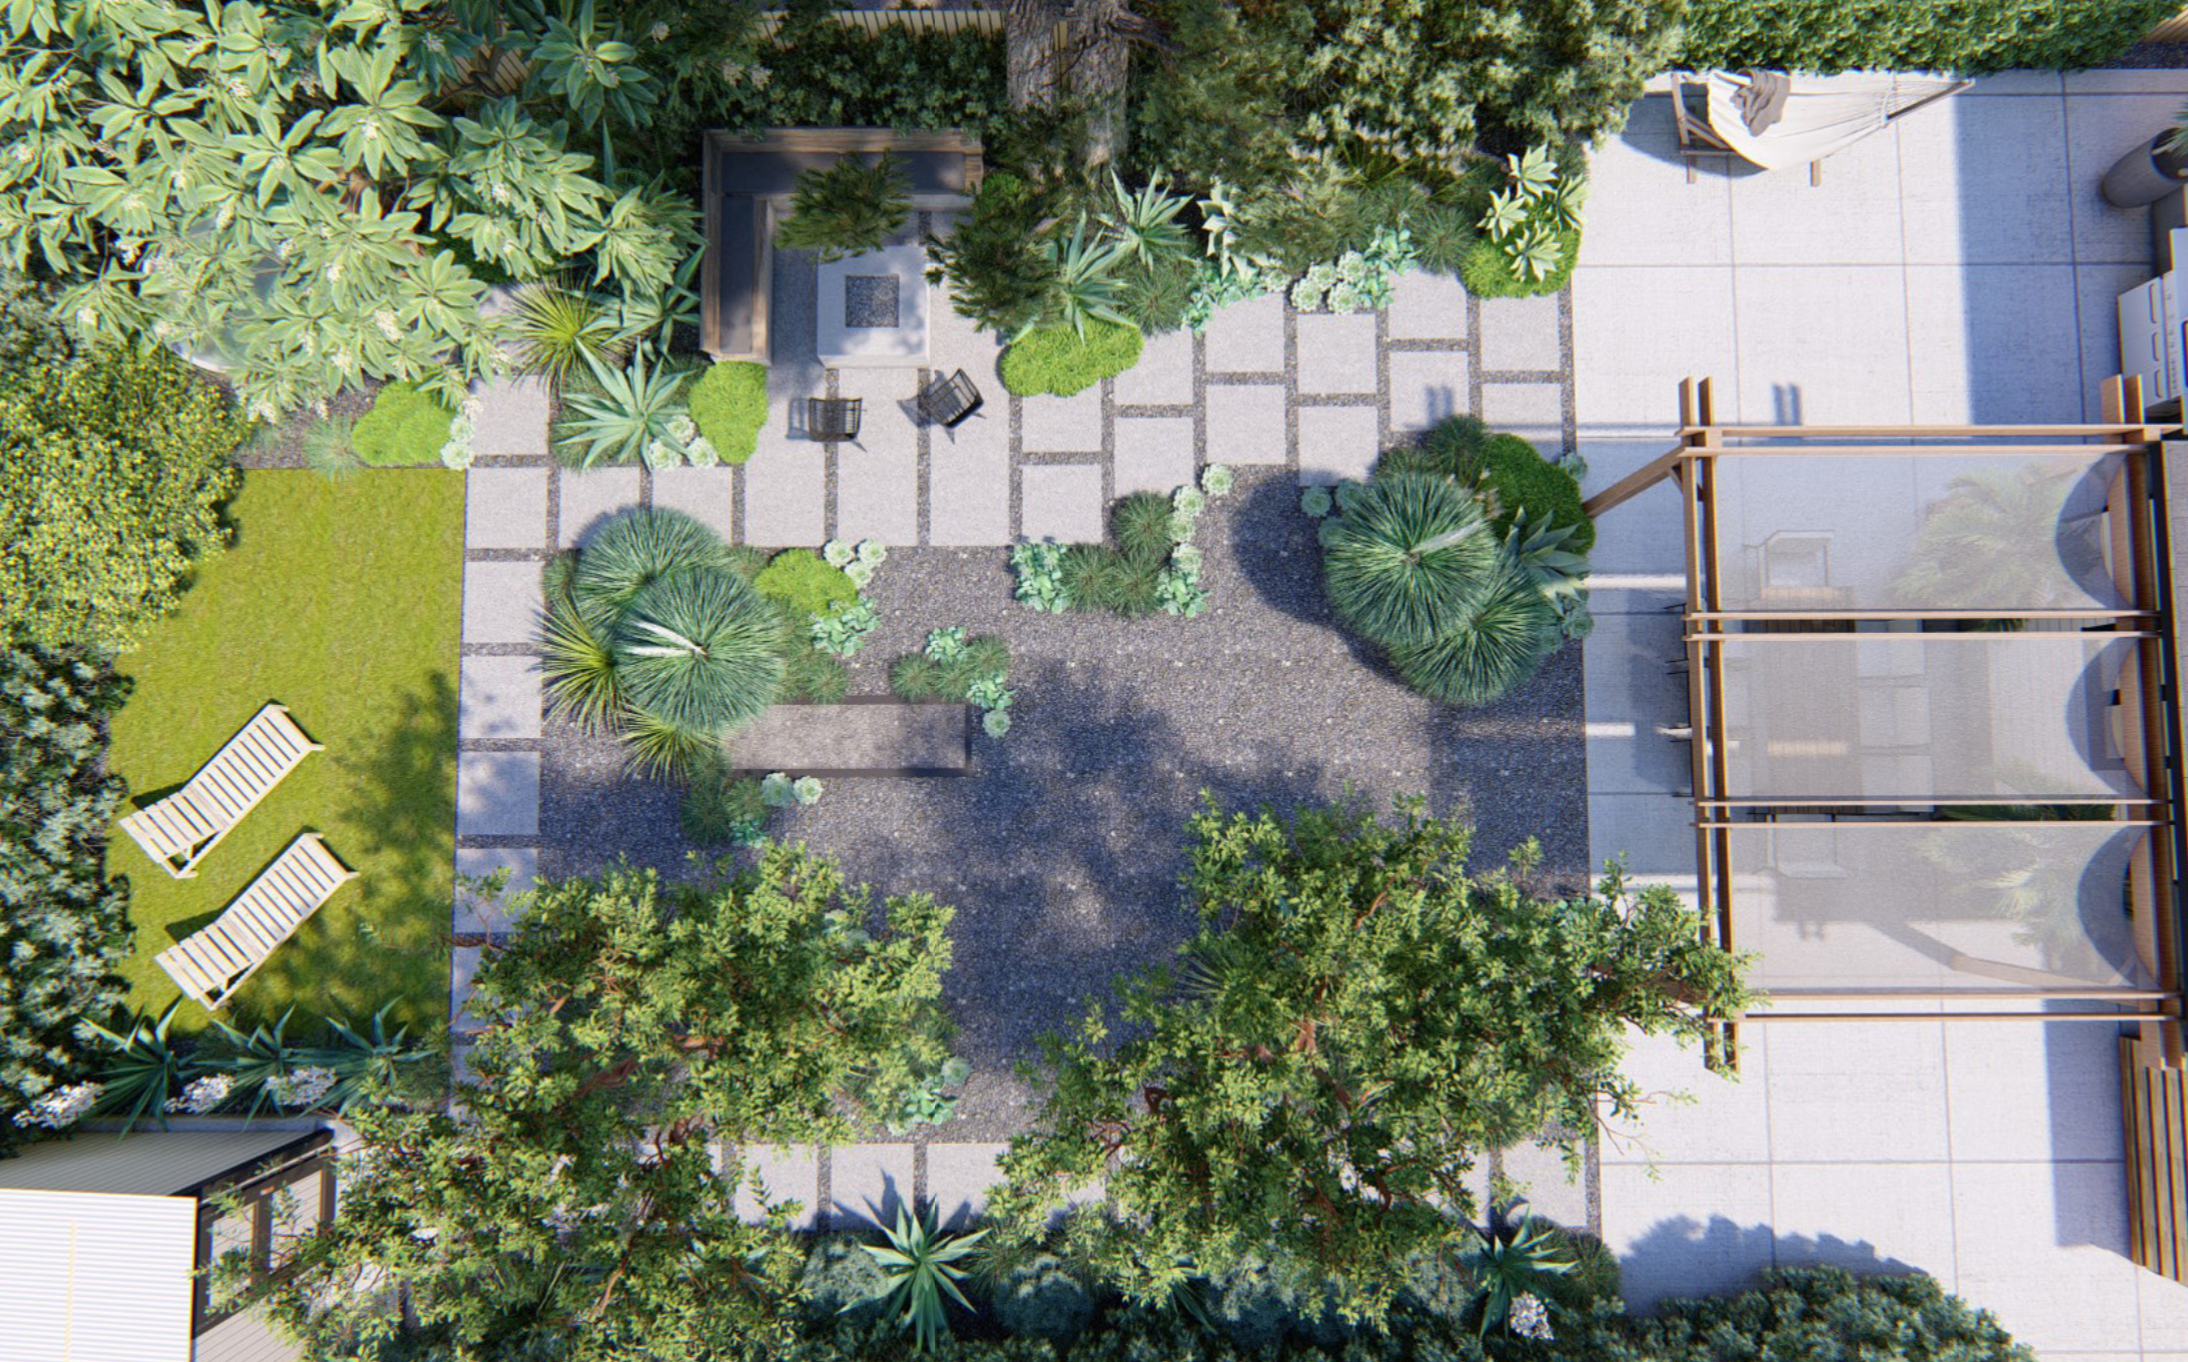 The bird's-eye view of Saletnik and Vesely's backyard shows how all the elements connect. Quarter-inch mixed beach pebble is used at the center of this space and also in between poured concrete pavers knitting the spaces together visually.